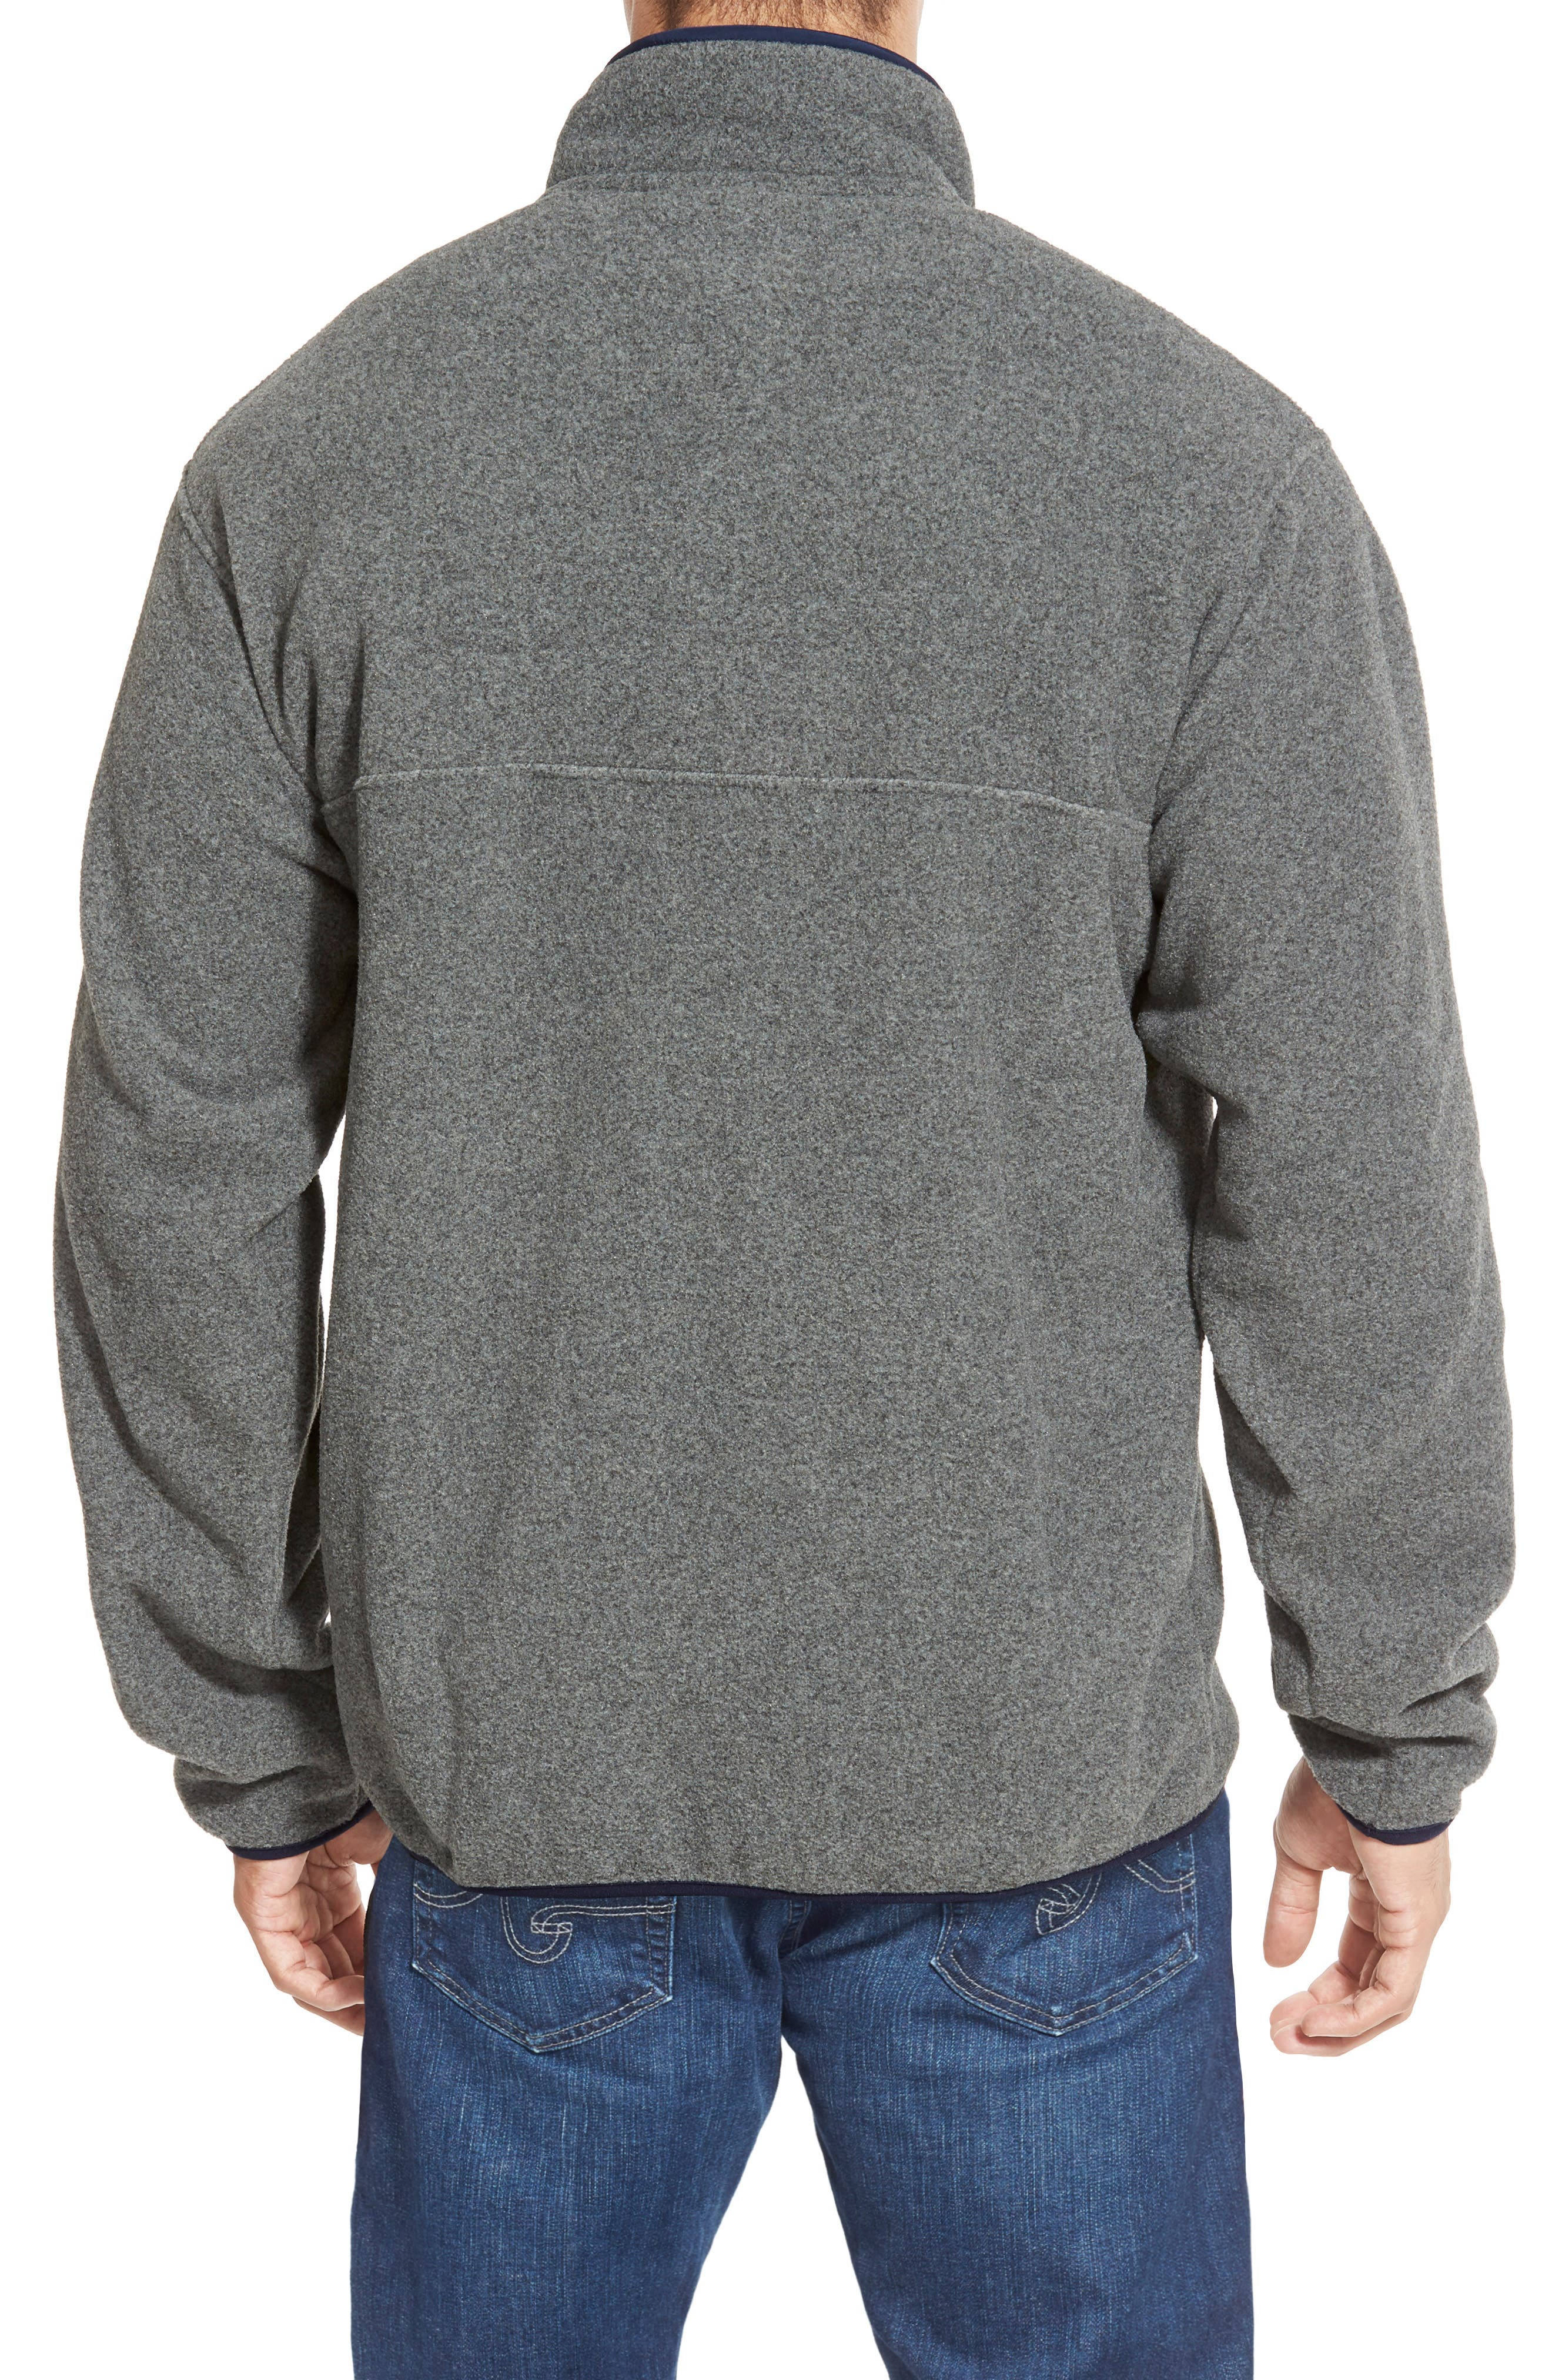 Synchilla<sup>®</sup> Snap-T<sup>®</sup> Fleece Pullover,                             Alternate thumbnail 4, color,                             NICKEL/ NAVY BLUE